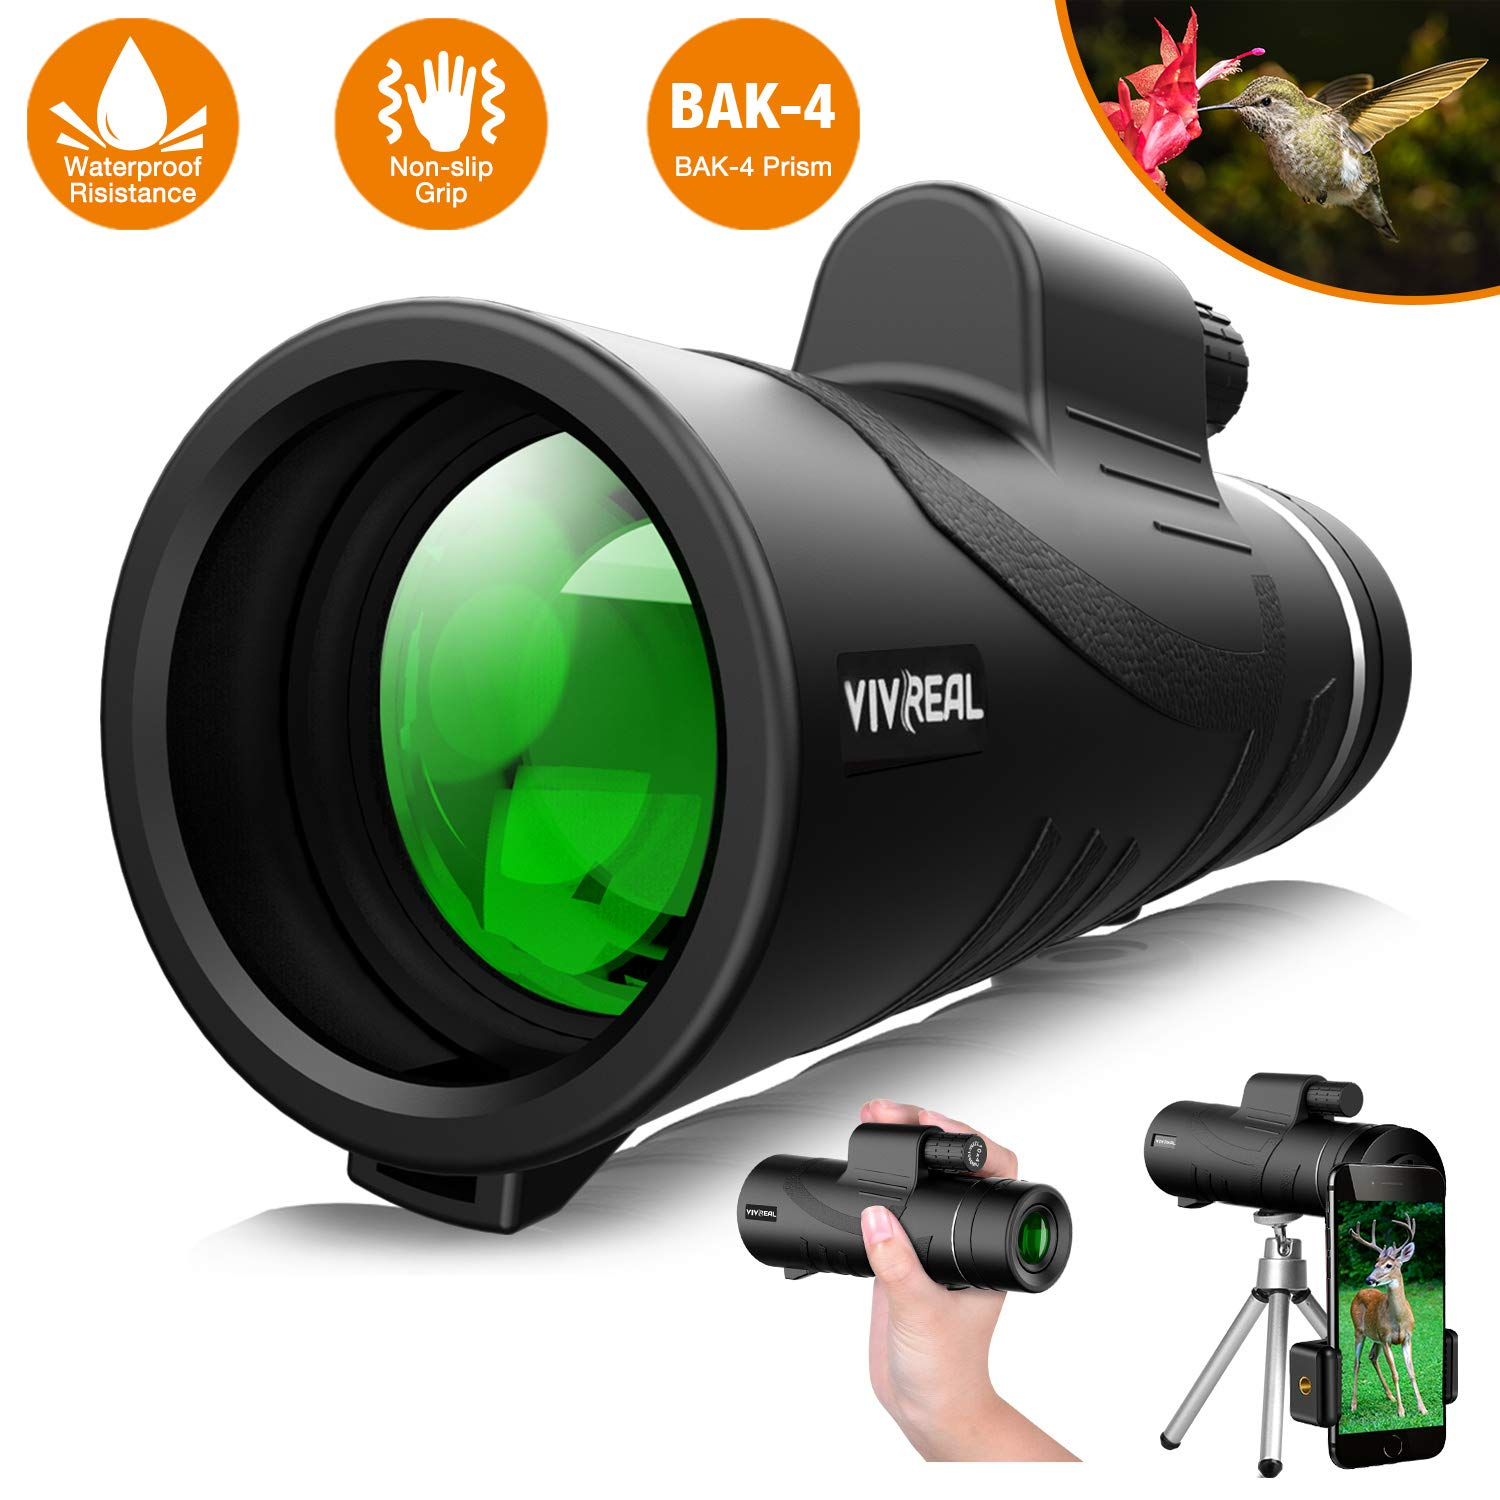 Monocular Telescope - 12X50 High Power 【HD Monocular for Bird Watching】 with Smartphone Holder & Tripod IPX7 Waterproof Monocular Made by Hyper FMC BAK4 Prism & Eco-Friendly Materials by VIVREAL